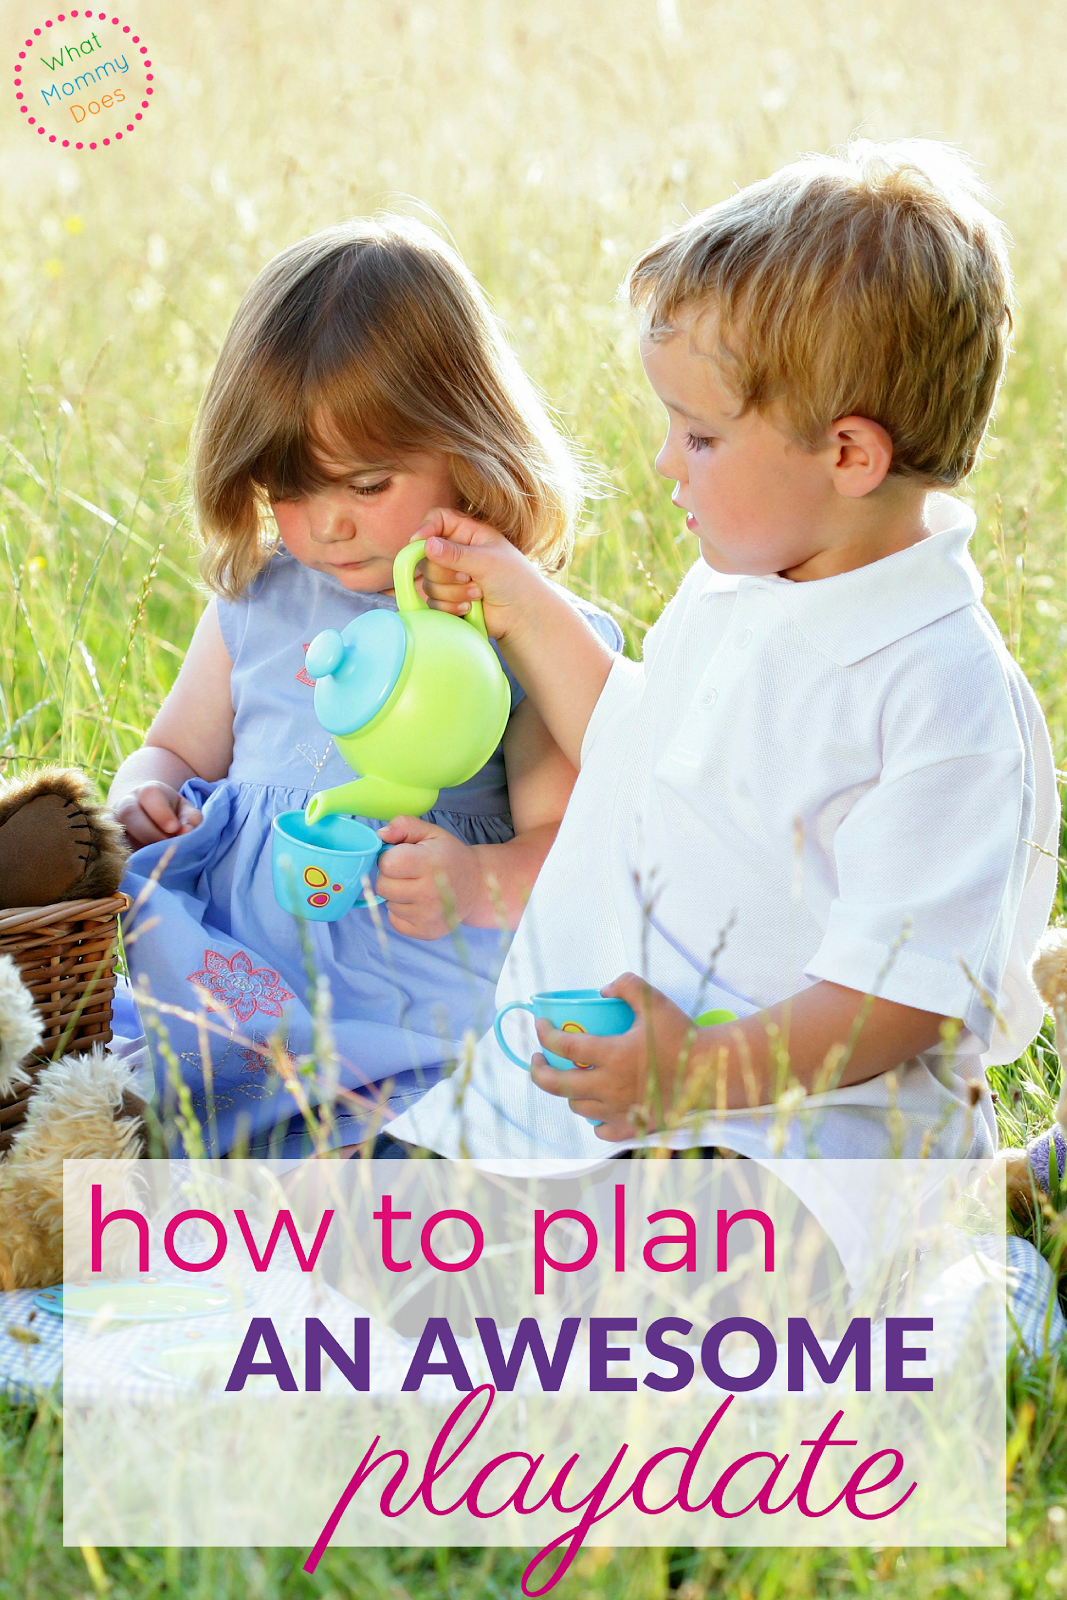 How to Plan a Play Date for Your Blind or Visually Impaired Child recommend